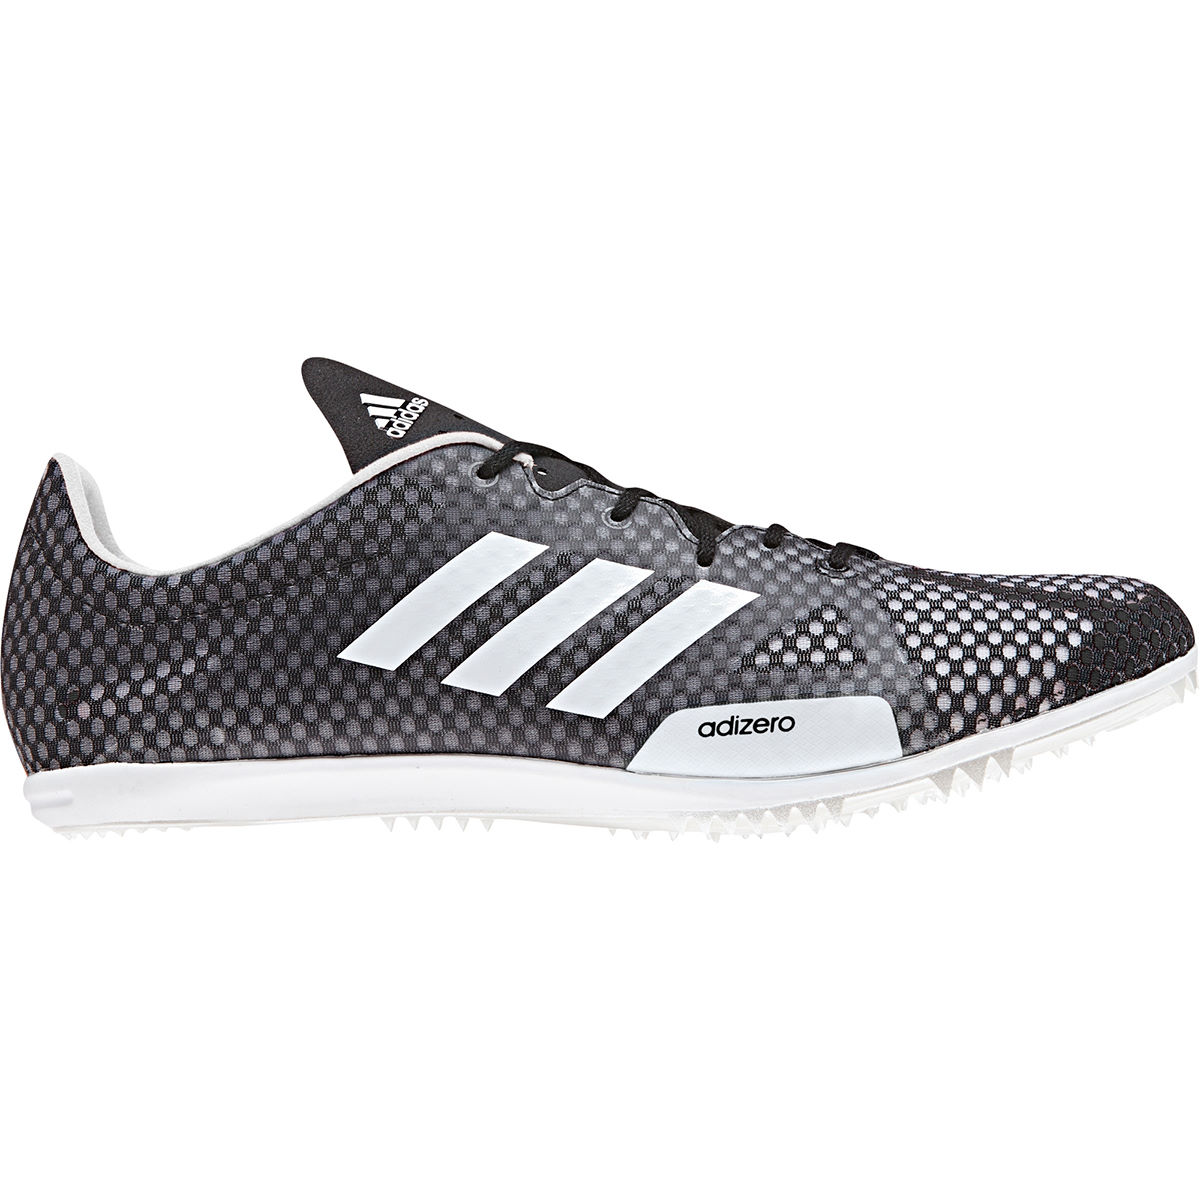 Adidas Adizero Ambition 4 Shoes - Zapatillas de atletismo